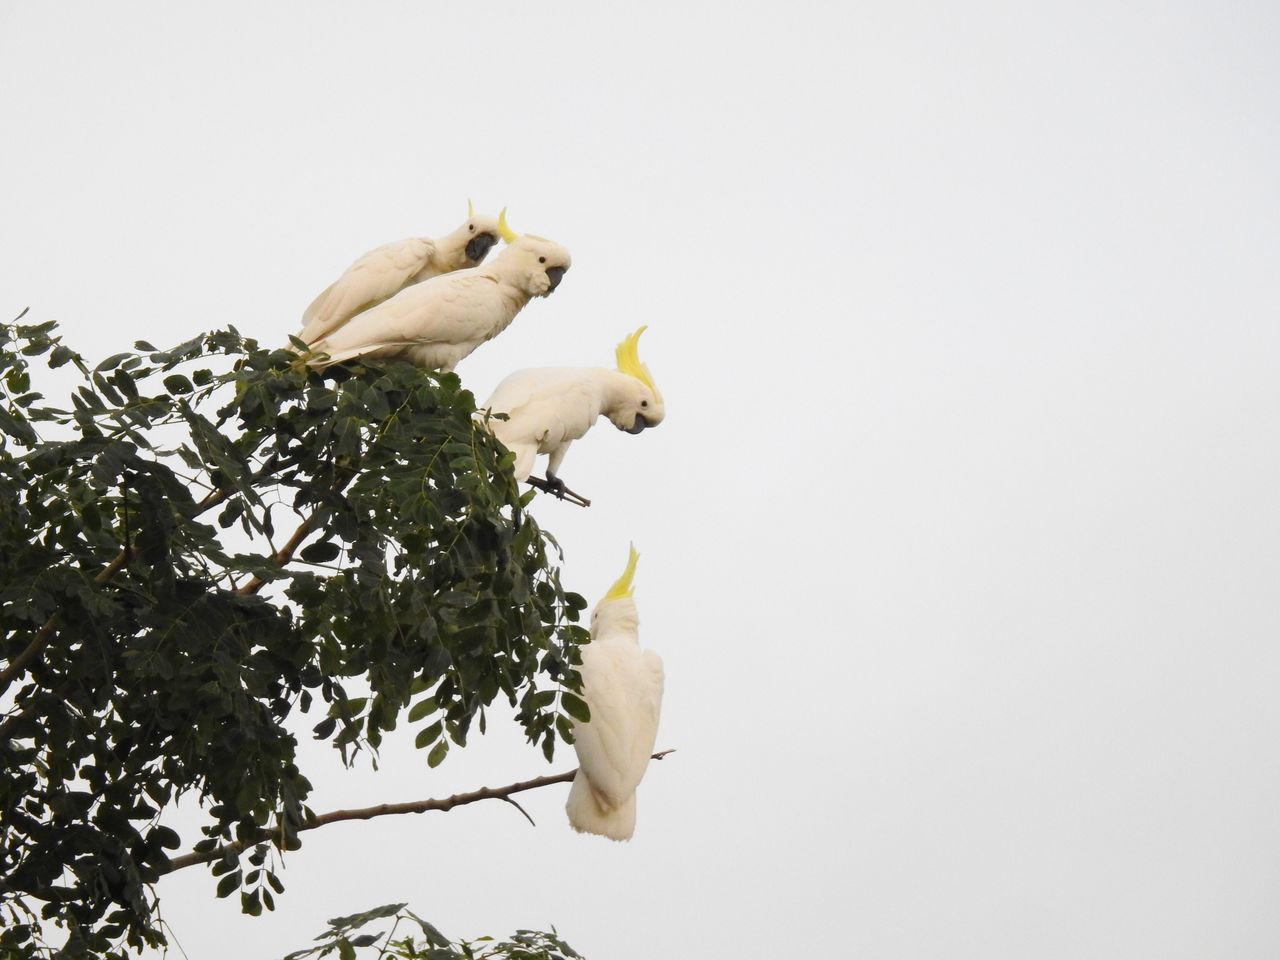 plant, tree, copy space, no people, animal, sky, animal themes, vertebrate, nature, clear sky, branch, growth, low angle view, animal wildlife, white color, one animal, plant part, leaf, bird, studio shot, outdoors